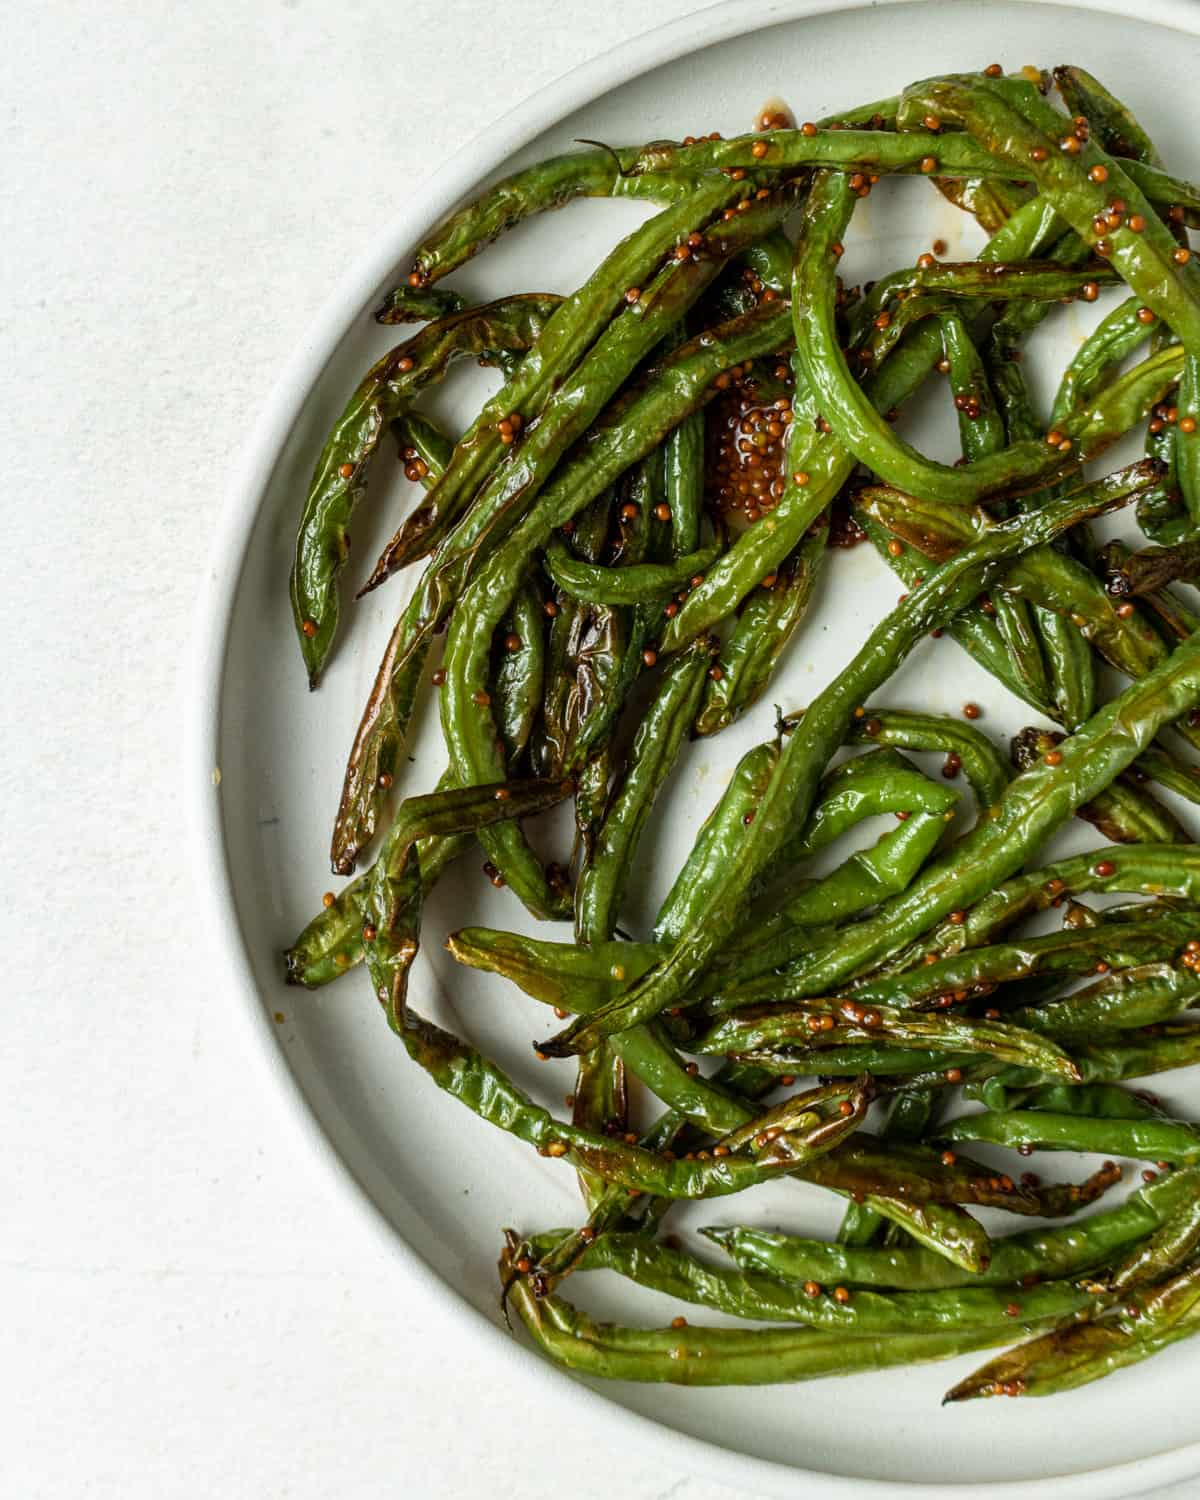 A close up but only partial view of cooked green beans tossed in combination mustard and honey. Green beans are on a white plate on a white backgroud.